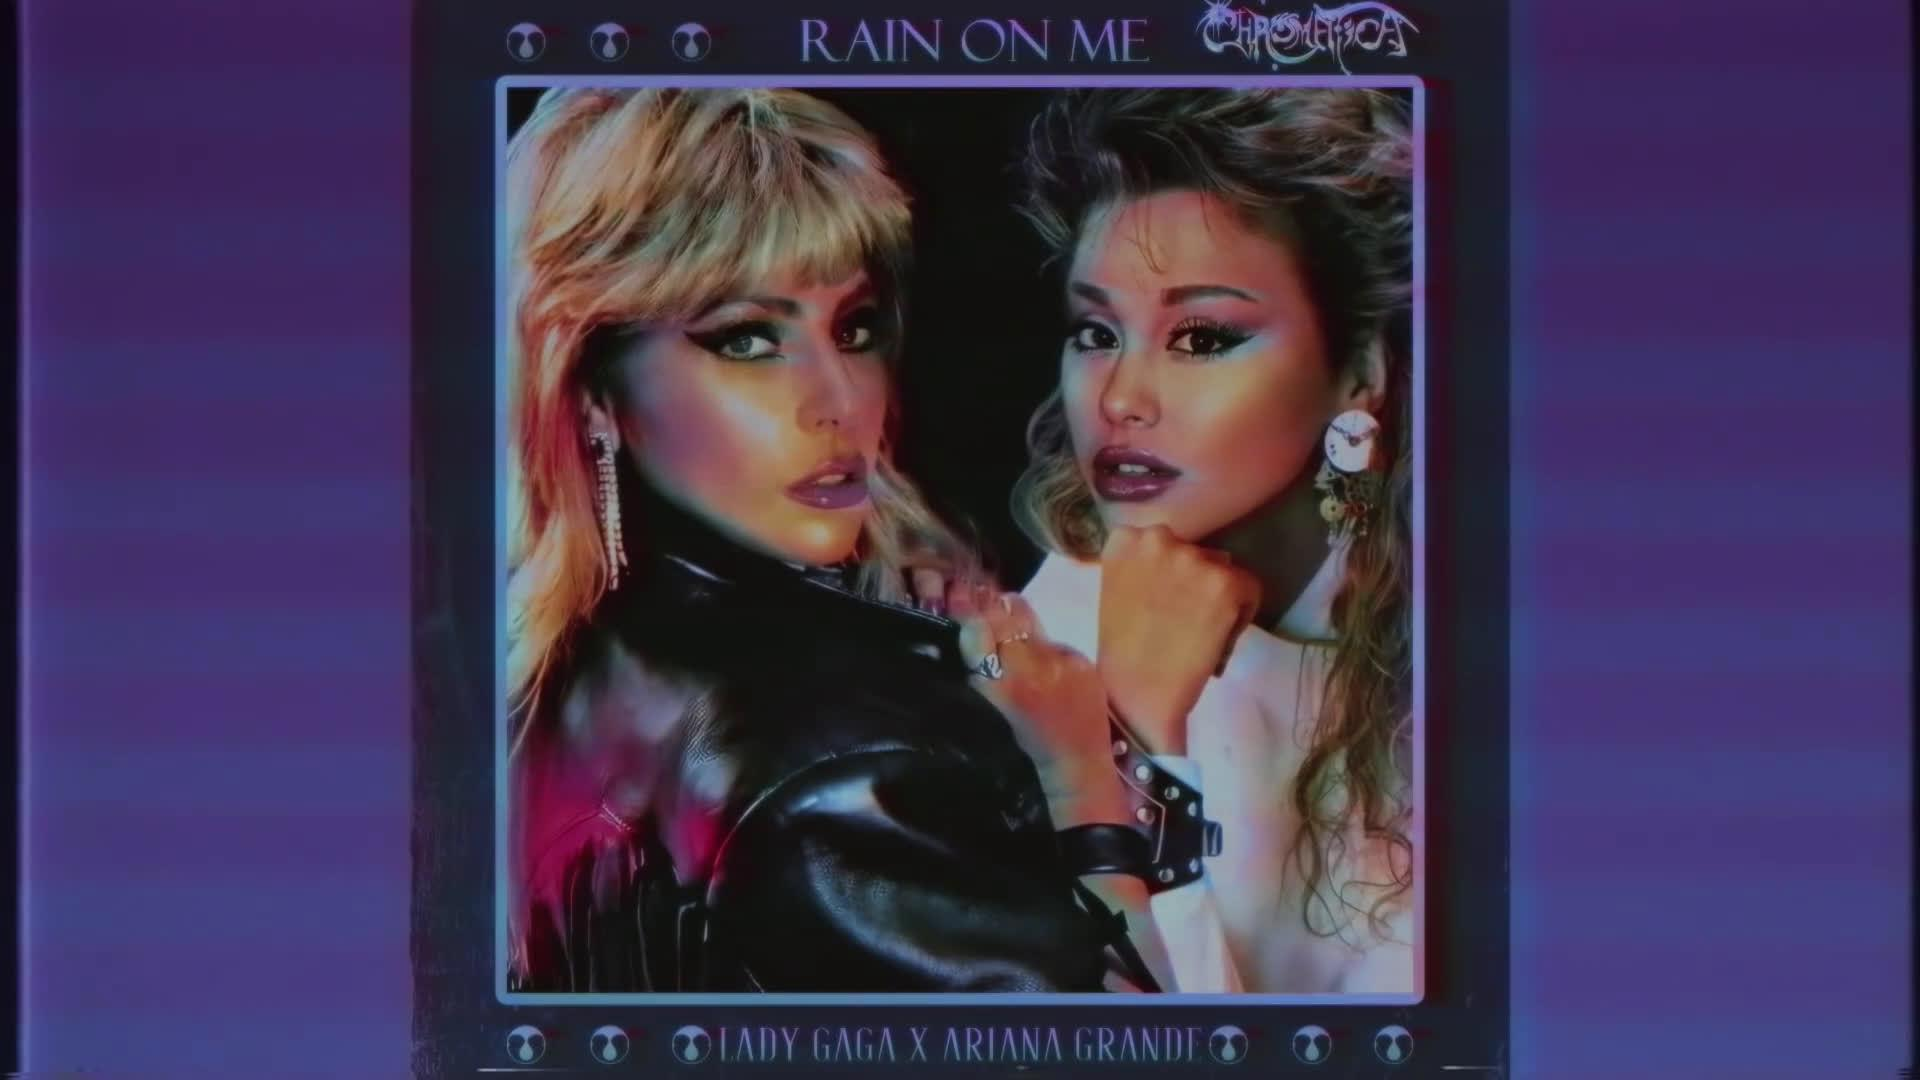 80年代风格的Lady Gaga & Ariana Grande《Rain On Me》混音!